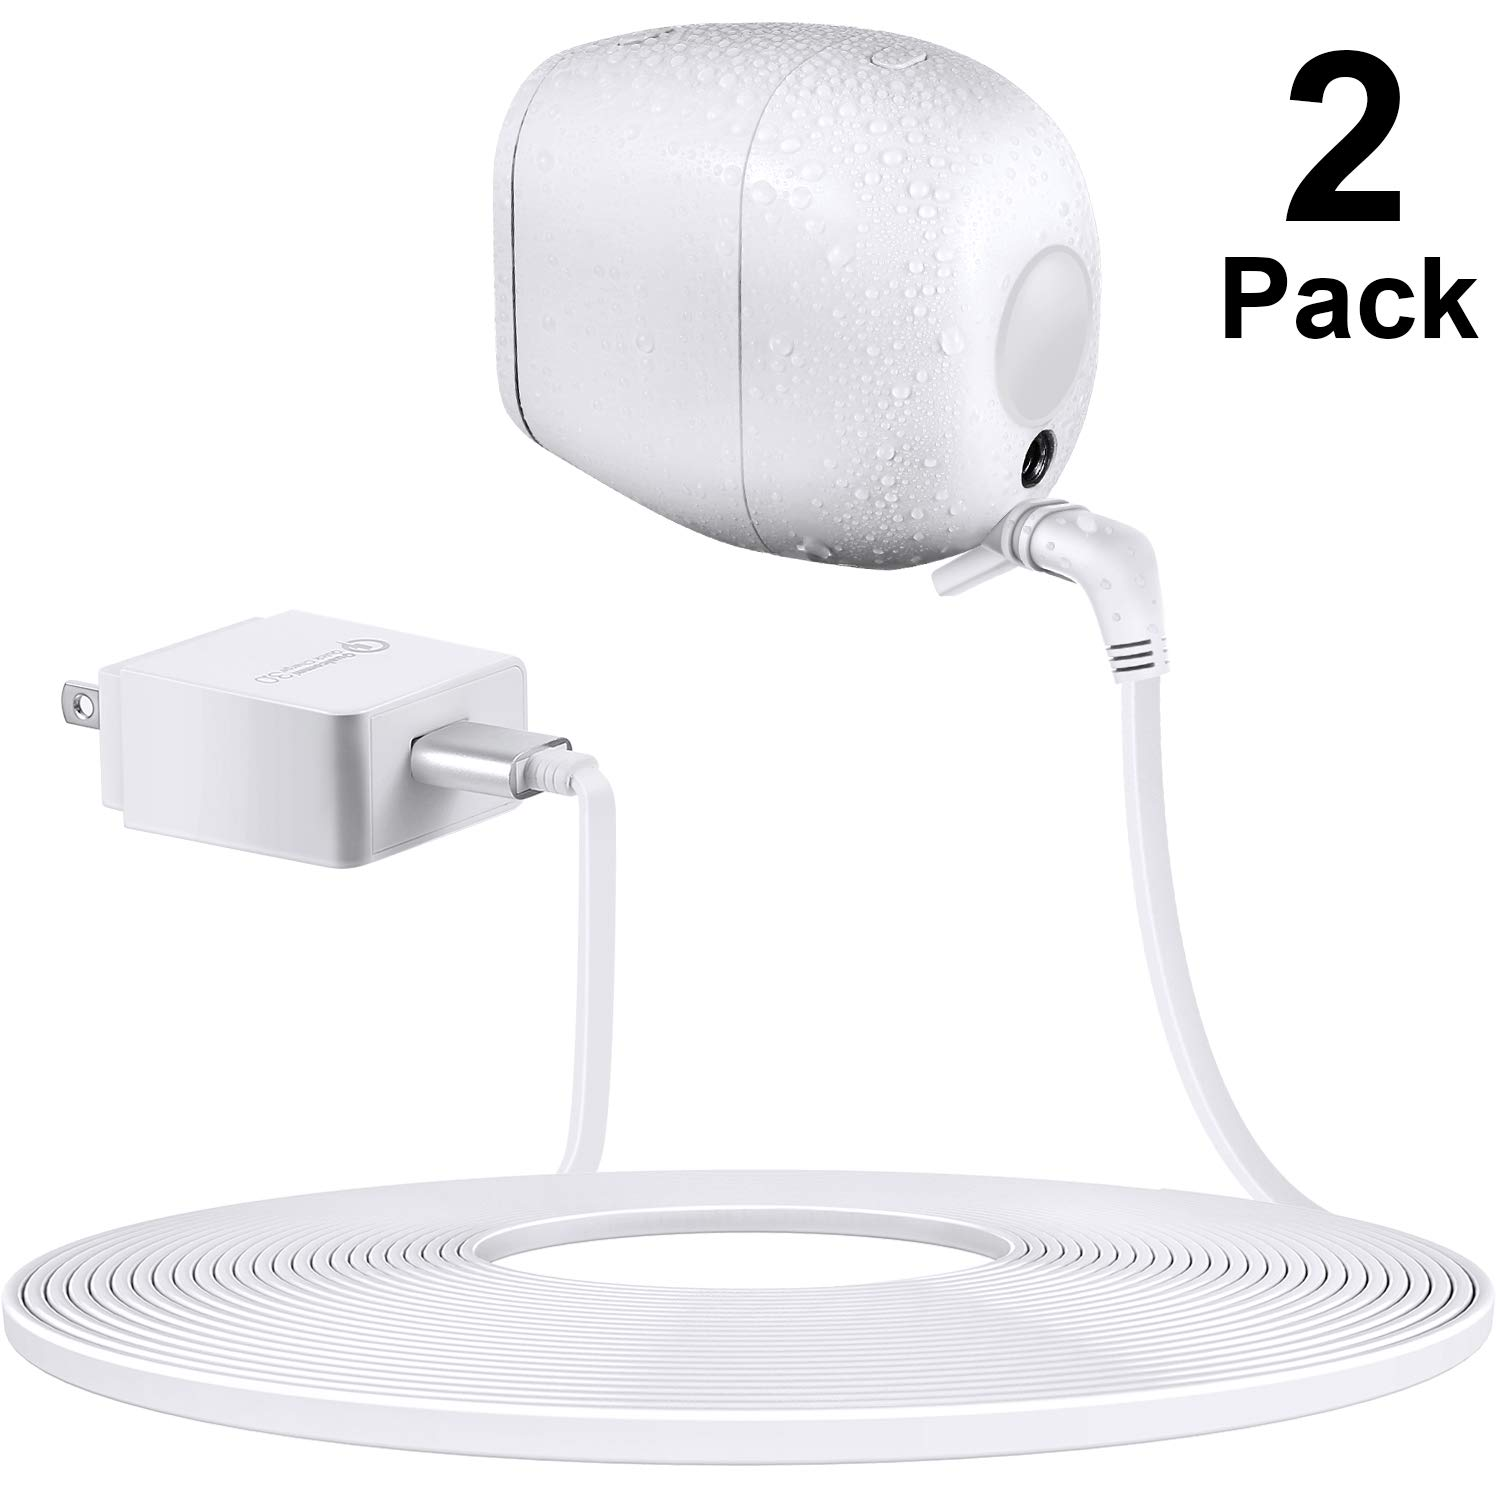 Power Adapter Compatible with Arlo Pro and Arlo Pro 2, Quick Charge 3.0 Charger Adapter with 23 ft/ 7 m Weatherproof Outdoor Cable Continuously Supply Power to Your Arlo Camera (2 Packs) by Frienda